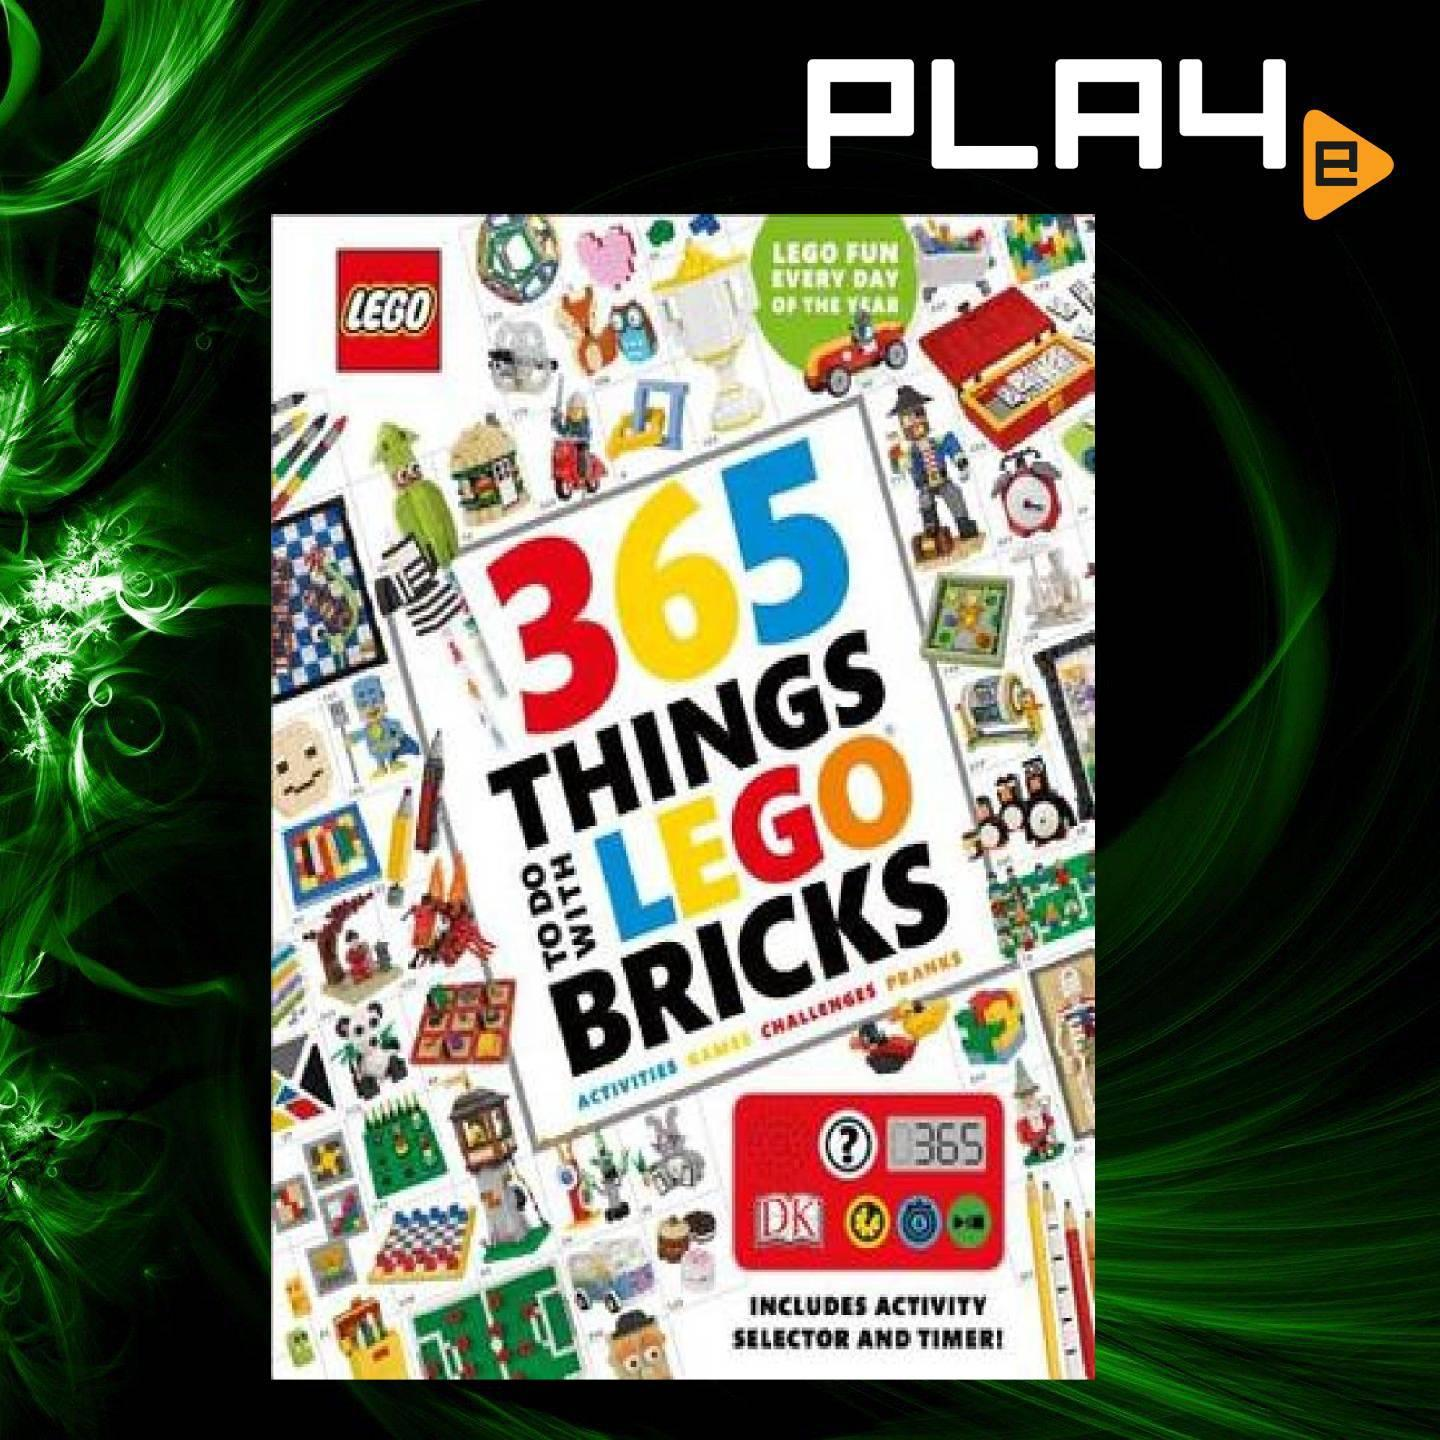 LEGO 365 Things to Do with LEGO Bricks Hardcover